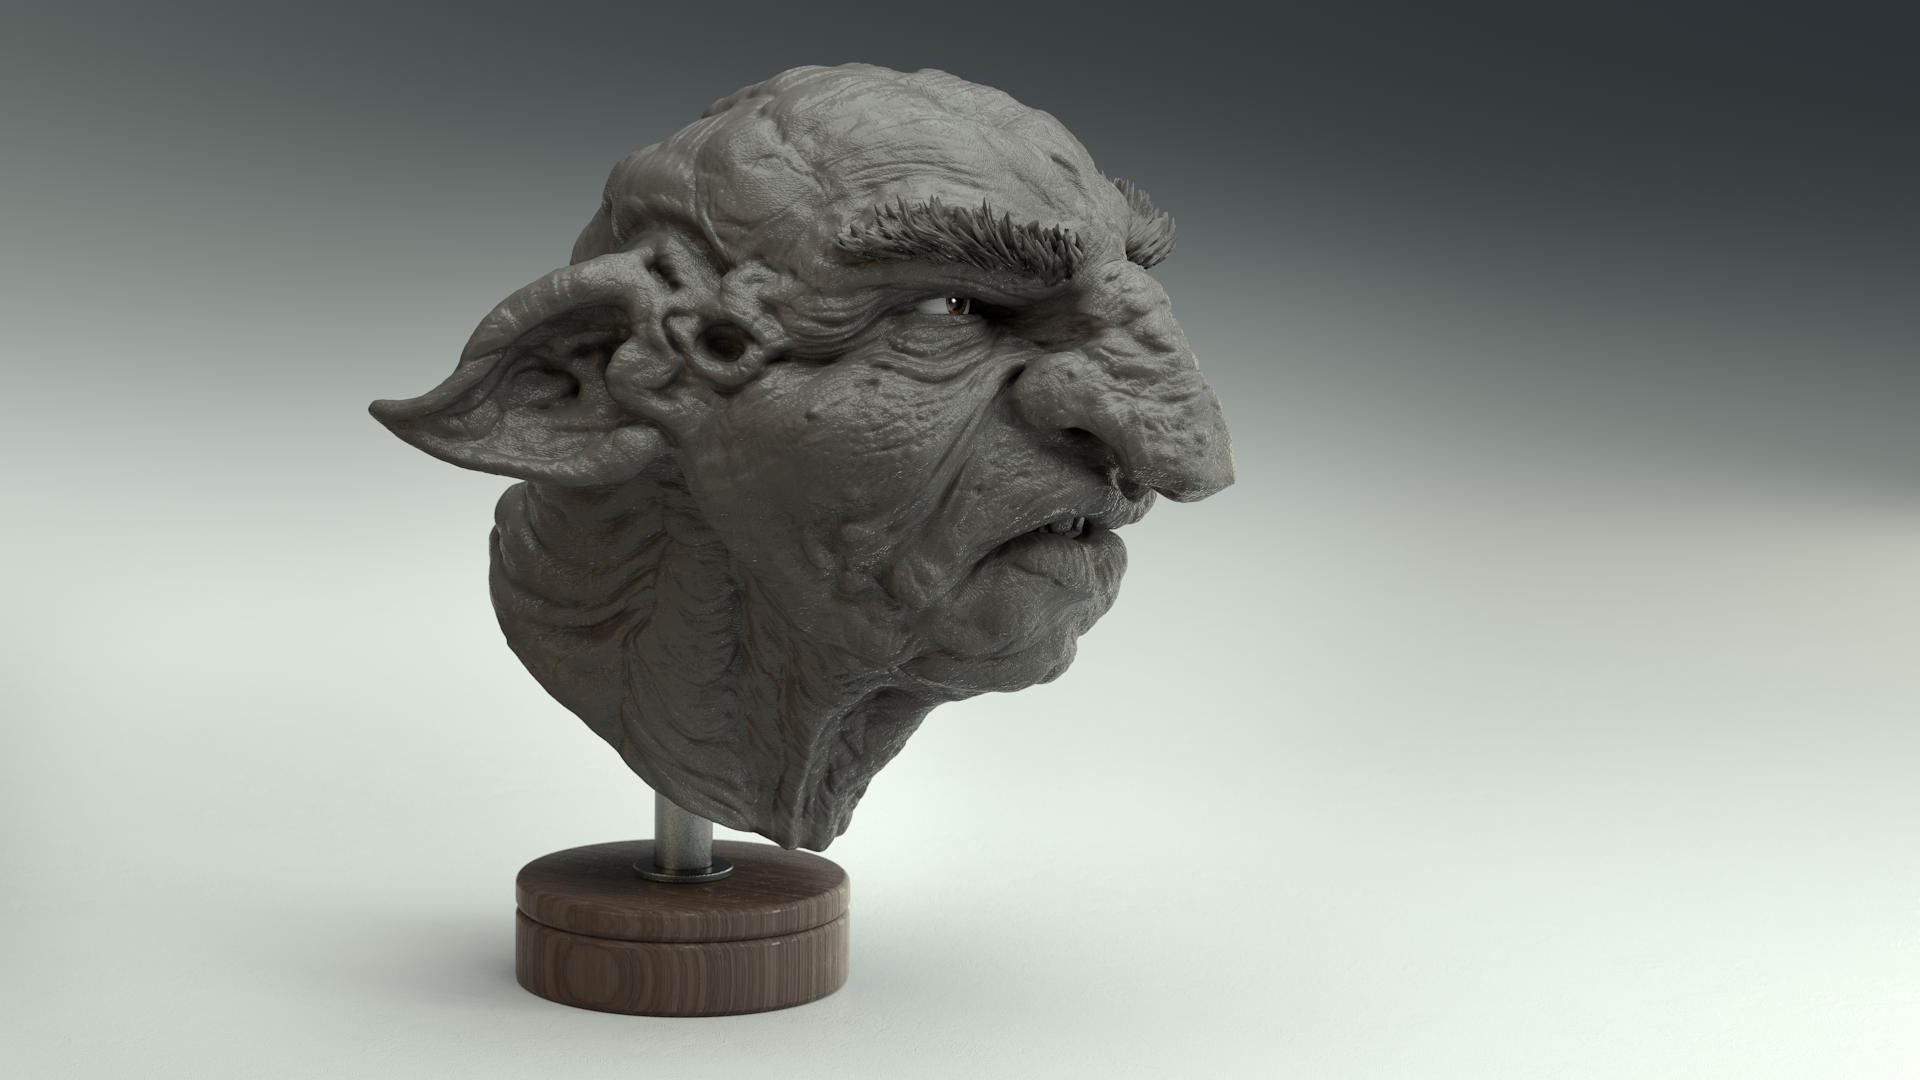 Gnome - Sketch - Zbrush